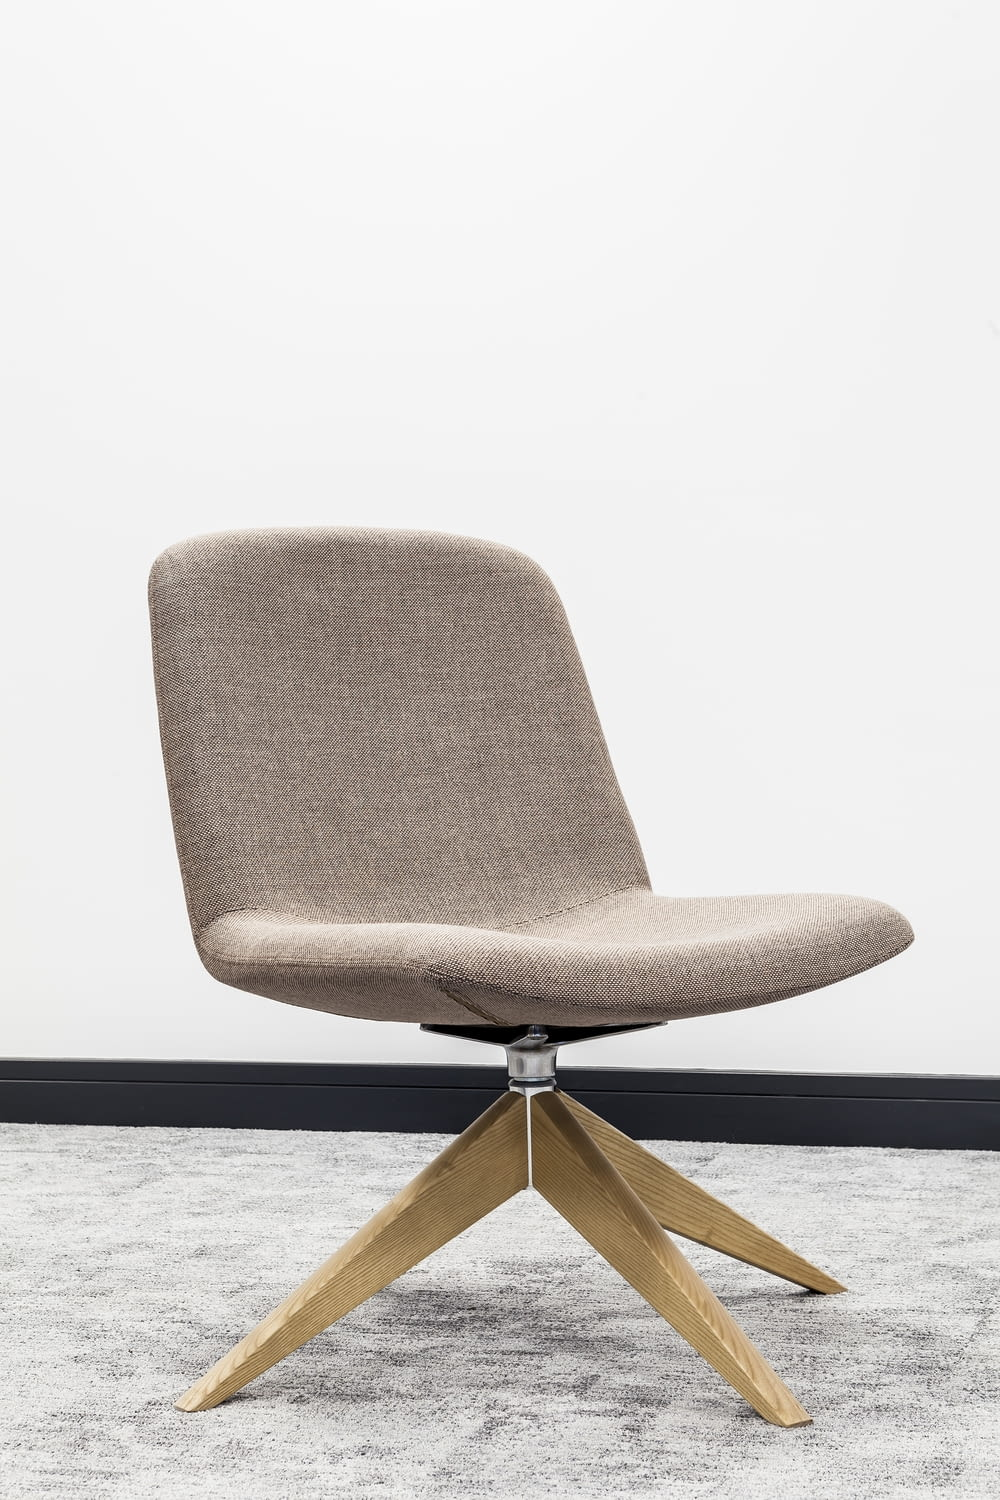 brown wooden framed gray padded chair